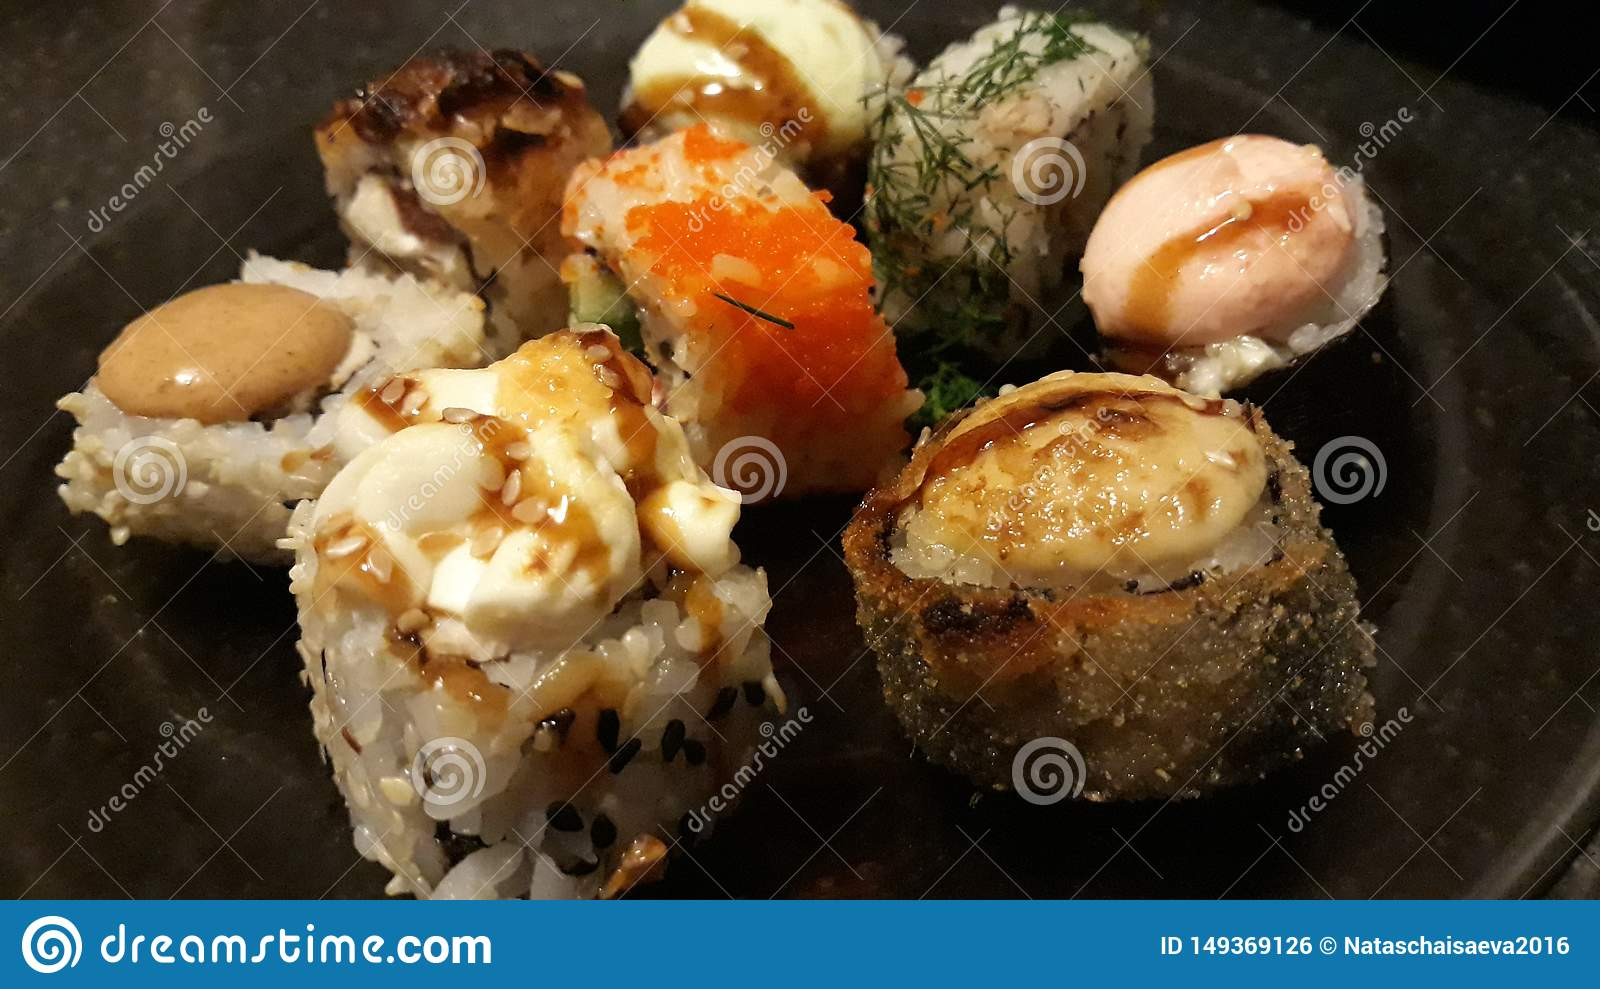 Assorted sushi and rolls